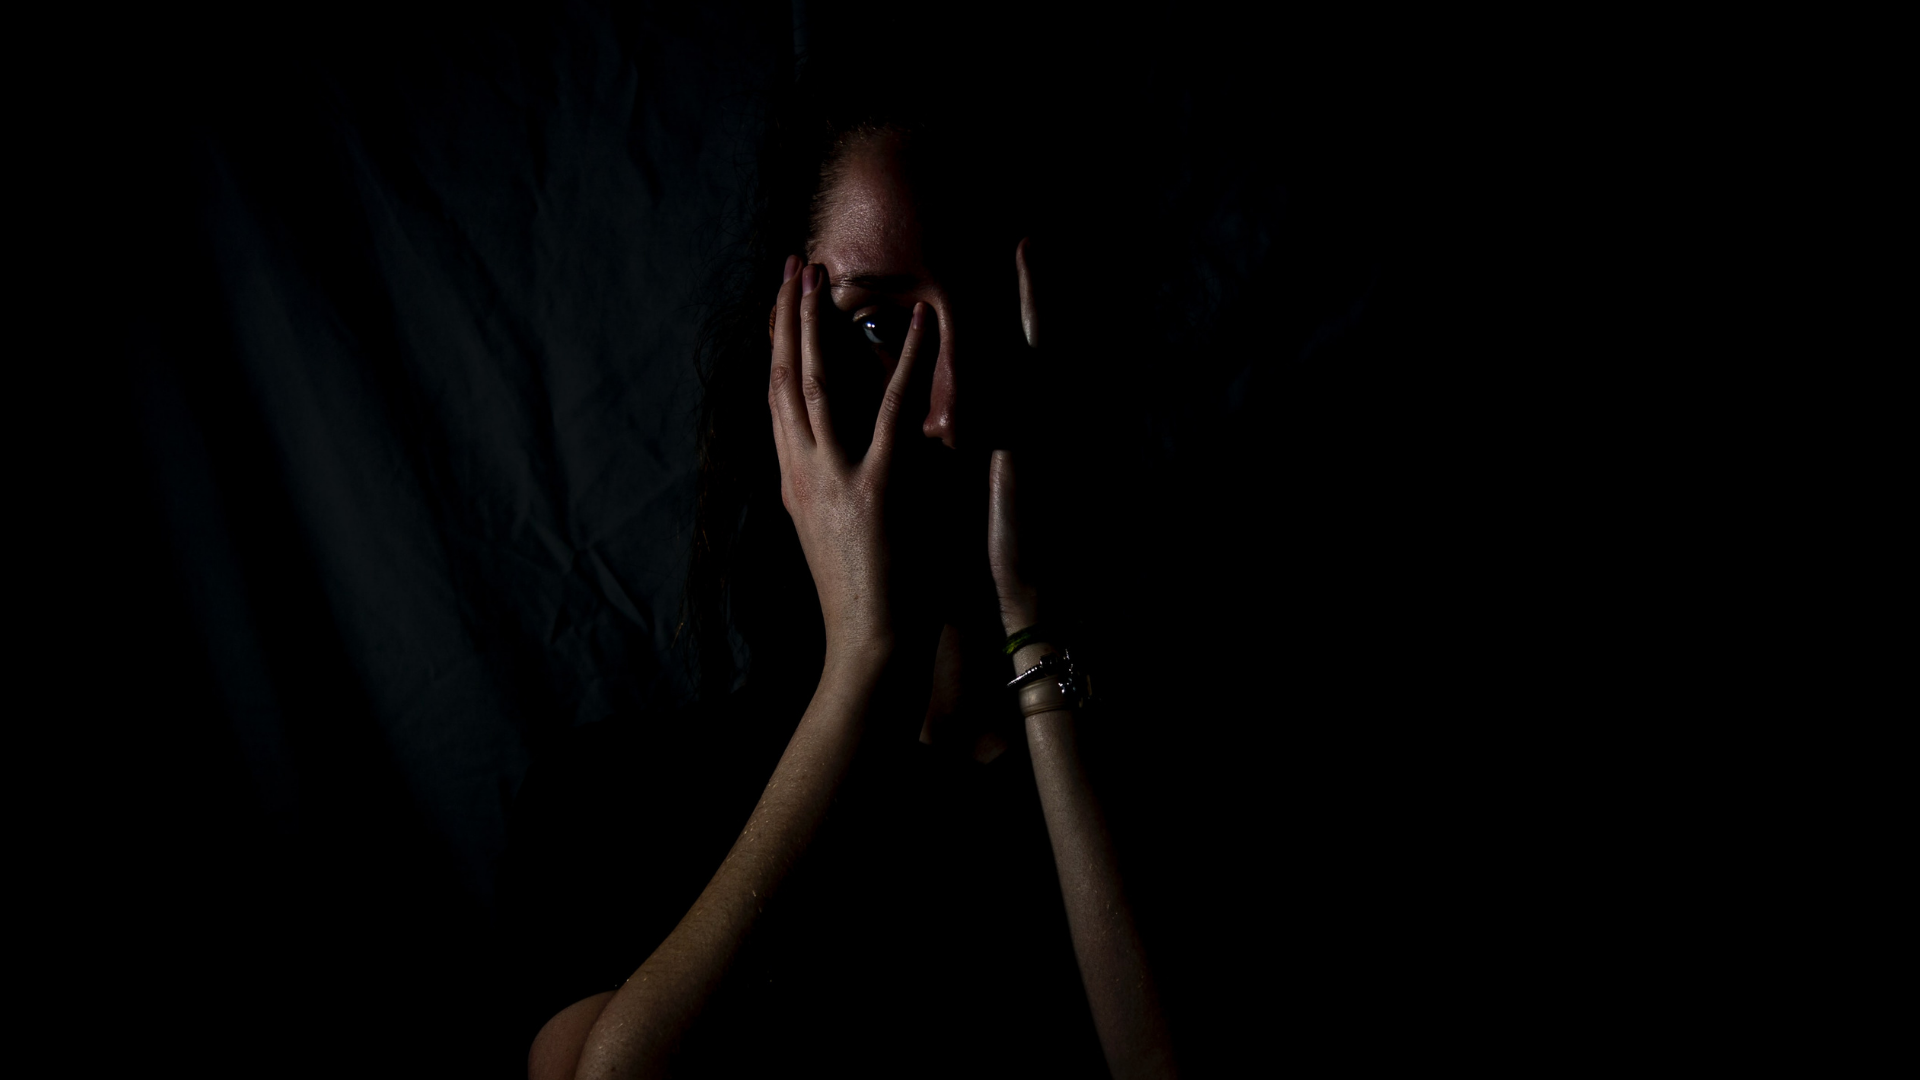 woman in darkness with hands on her face